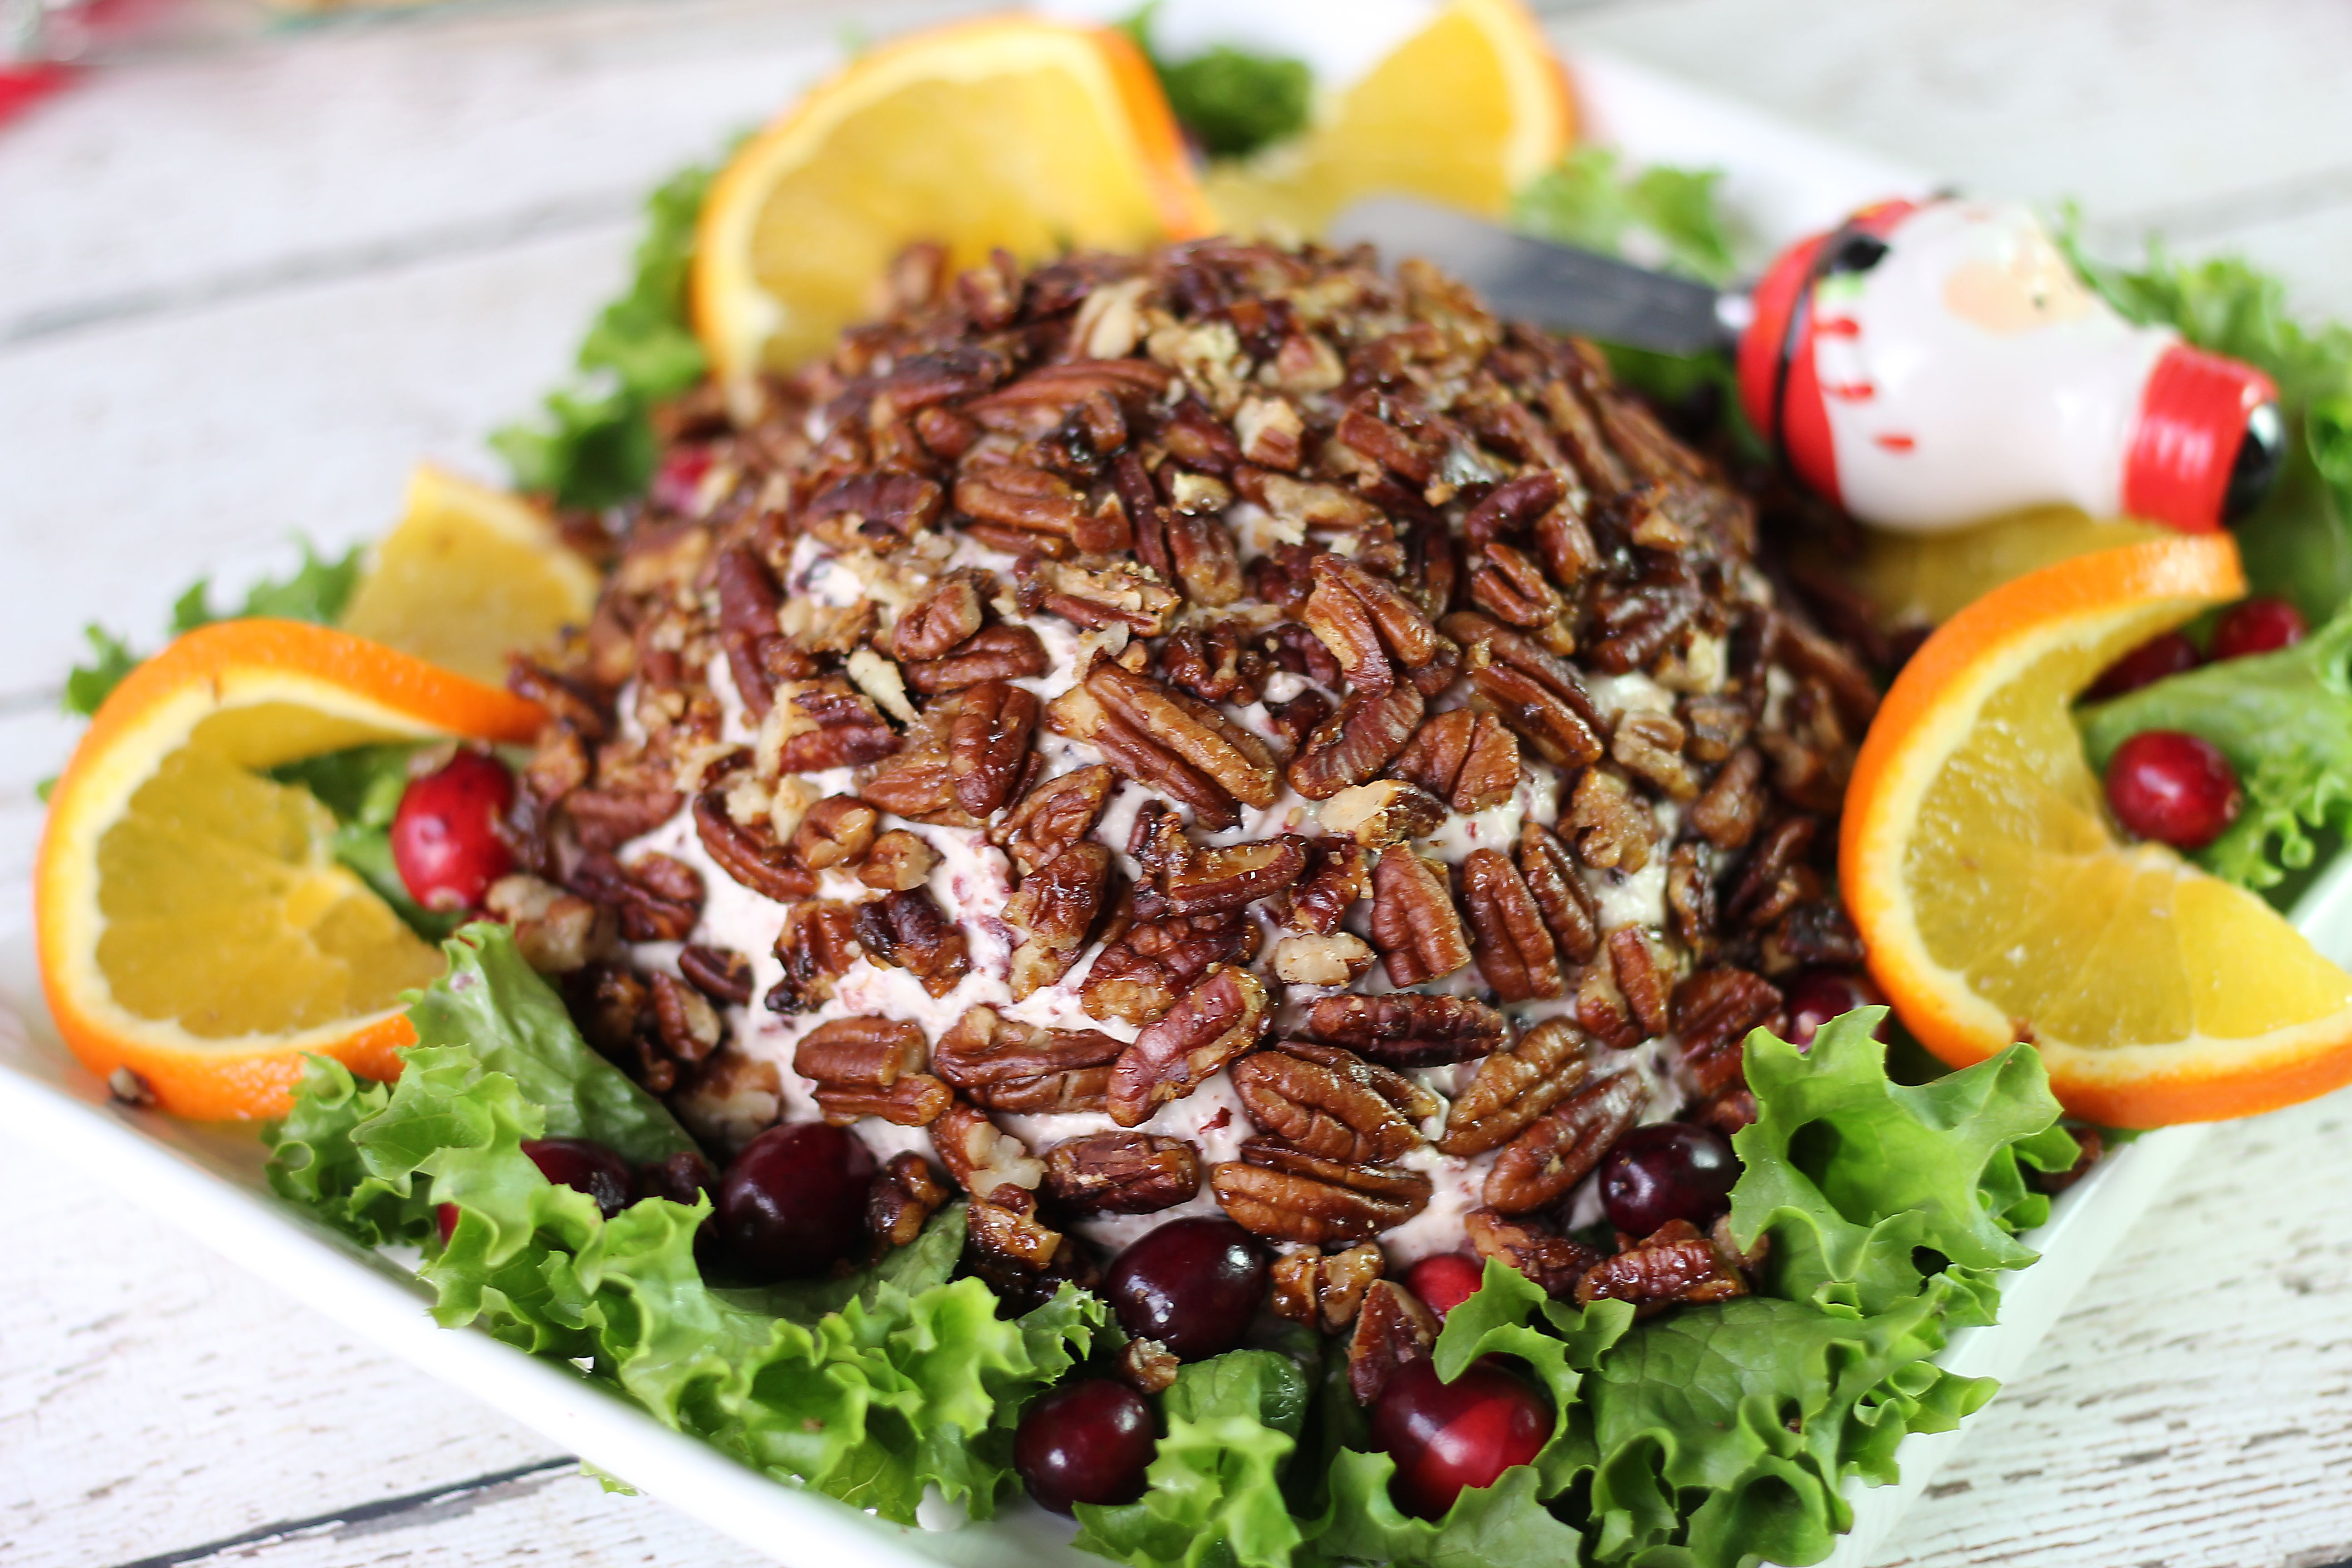 Cranberry Orange Cheese Ball with Caramelized Pecans